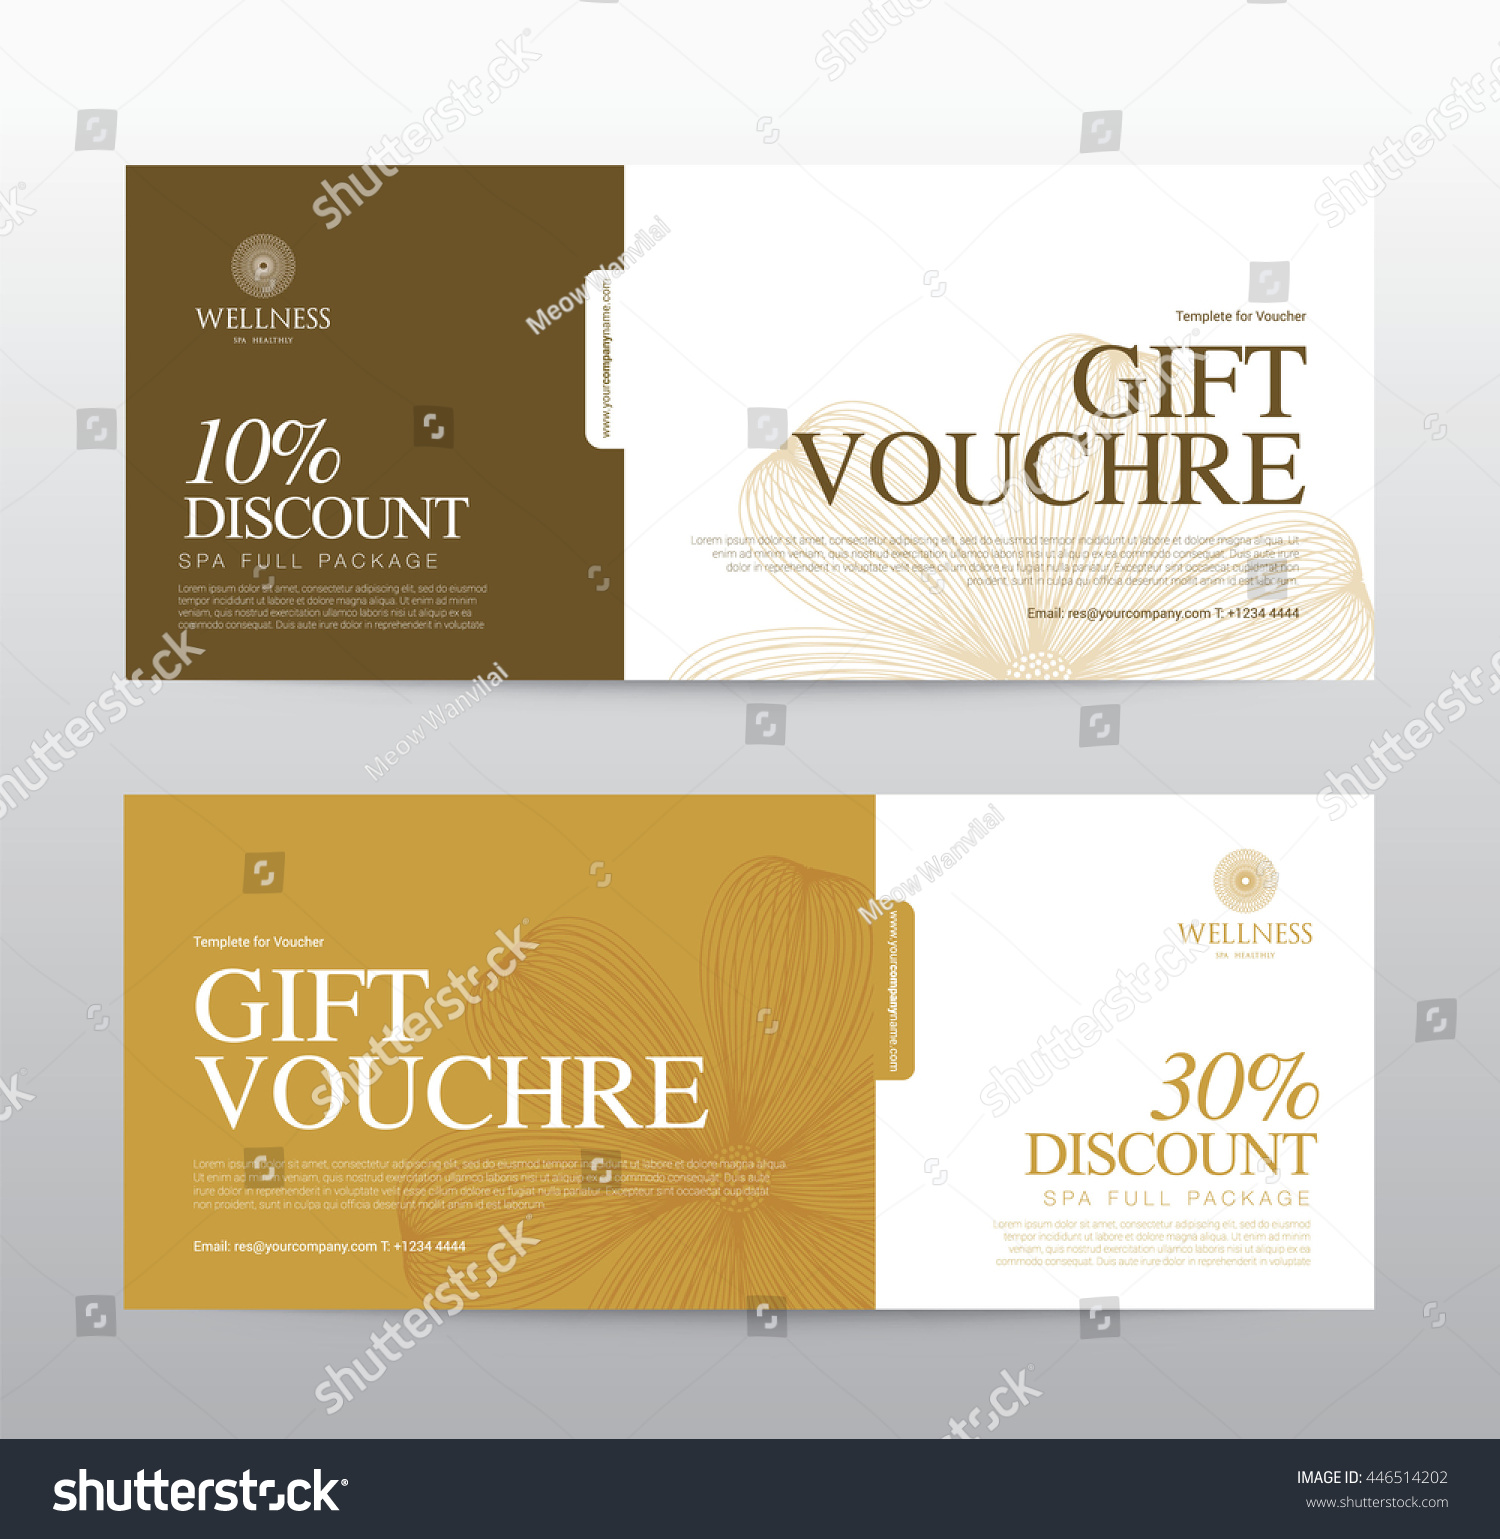 gift voucher template spa hotel resort のベクター画像素材